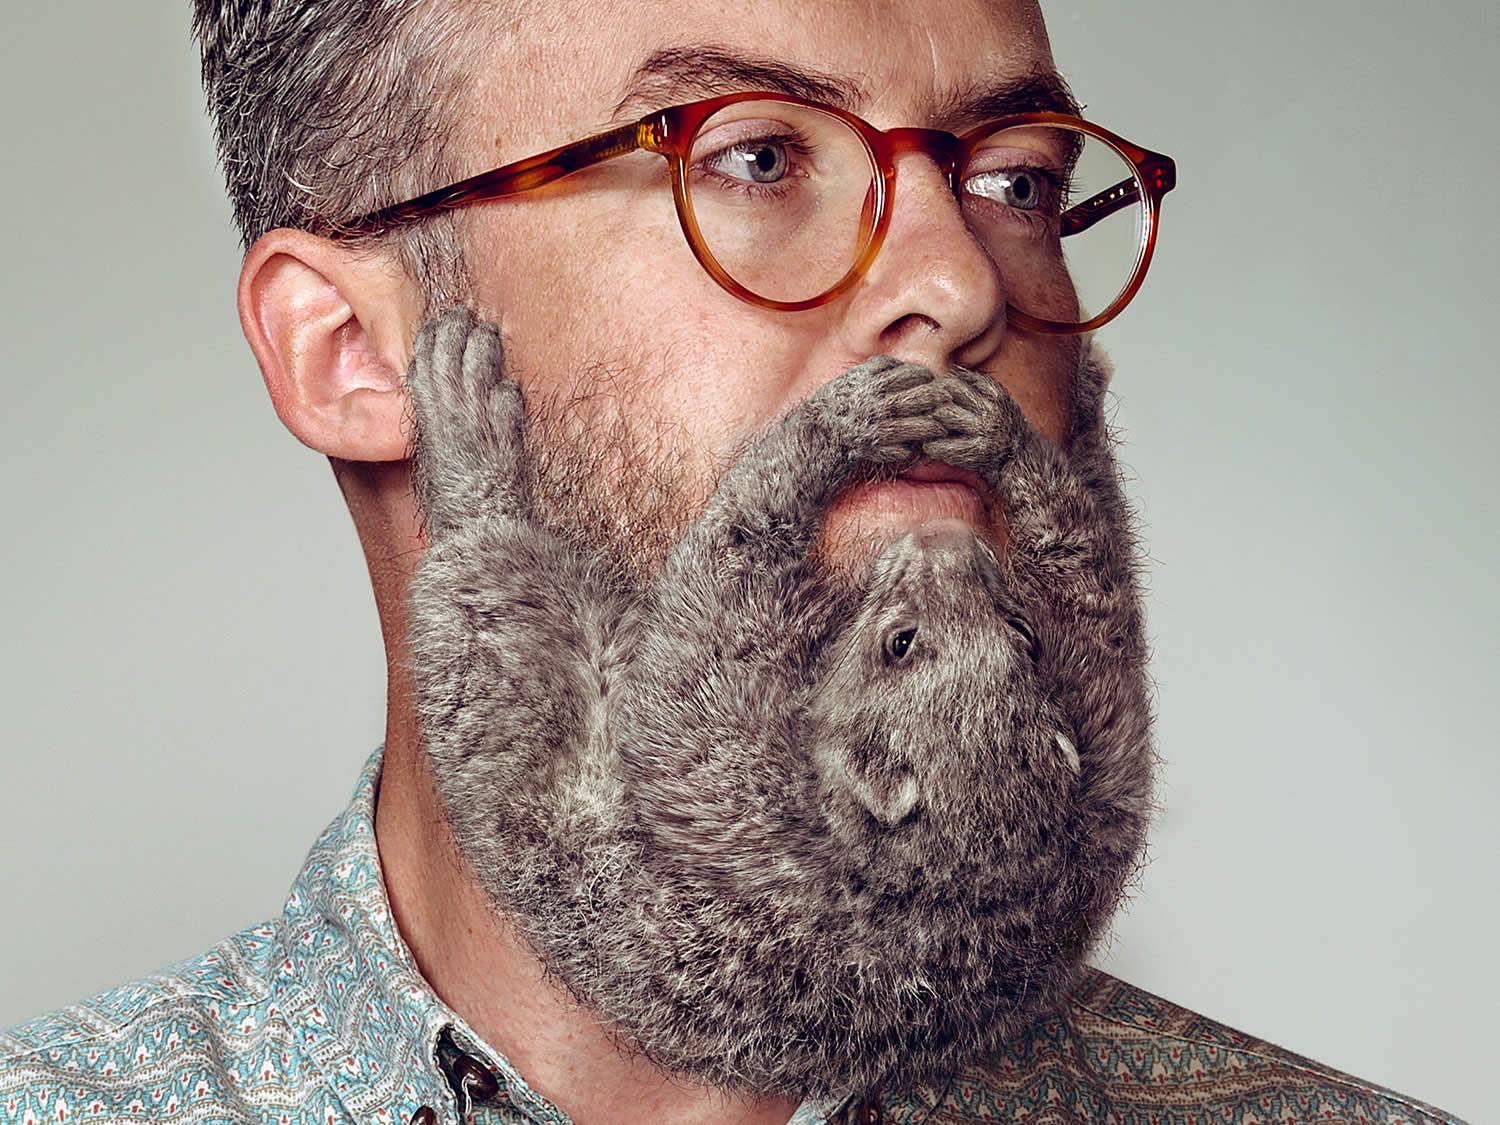 grey haired beard,Electric Art / Schick NZ. By Sharpe + Associates Inc.